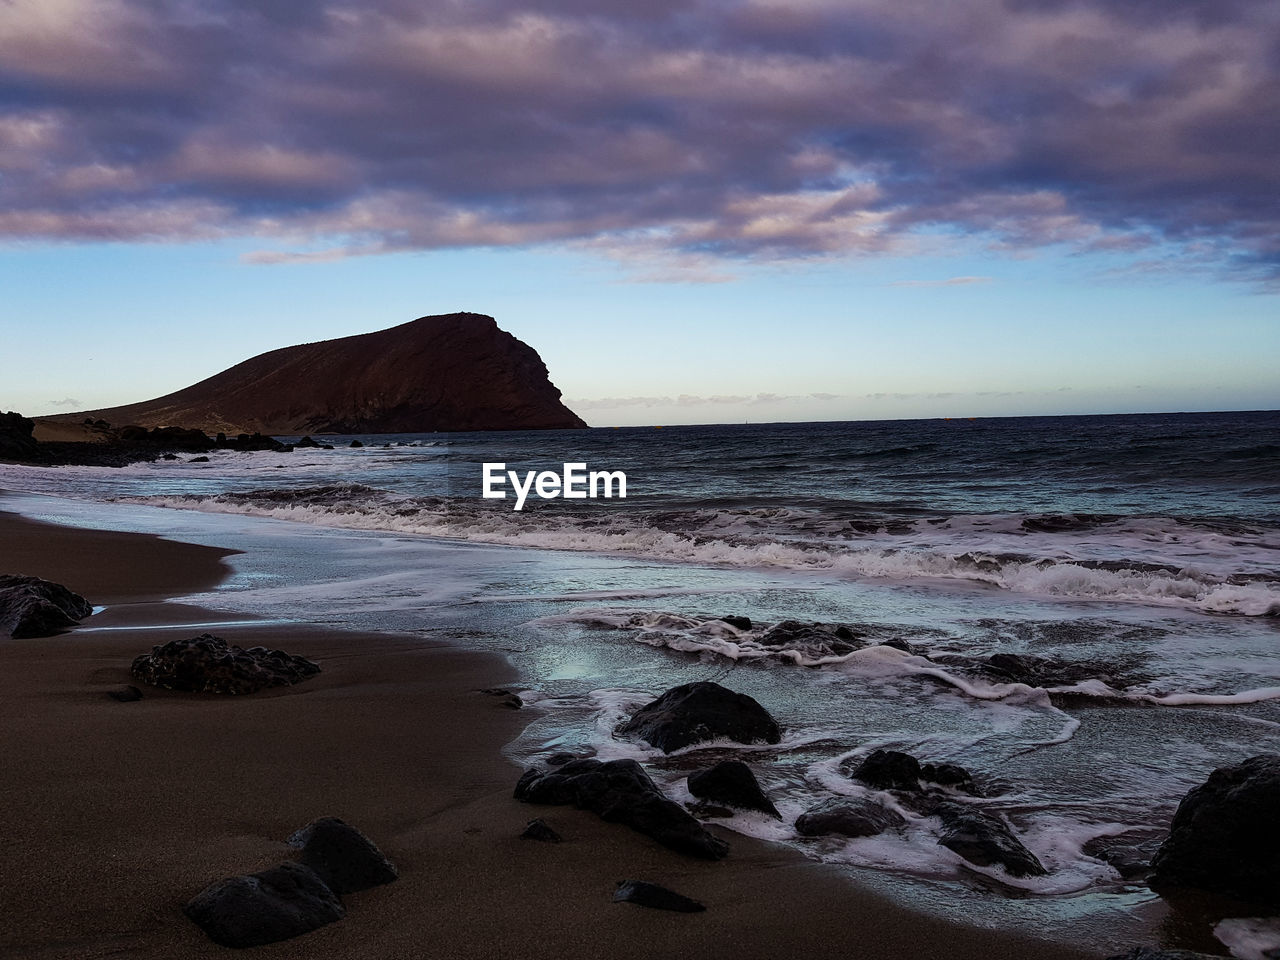 sea, sky, beach, land, water, cloud - sky, beauty in nature, horizon over water, scenics - nature, rock, horizon, tranquil scene, tranquility, rock - object, solid, sunset, motion, sport, no people, outdoors, stack rock